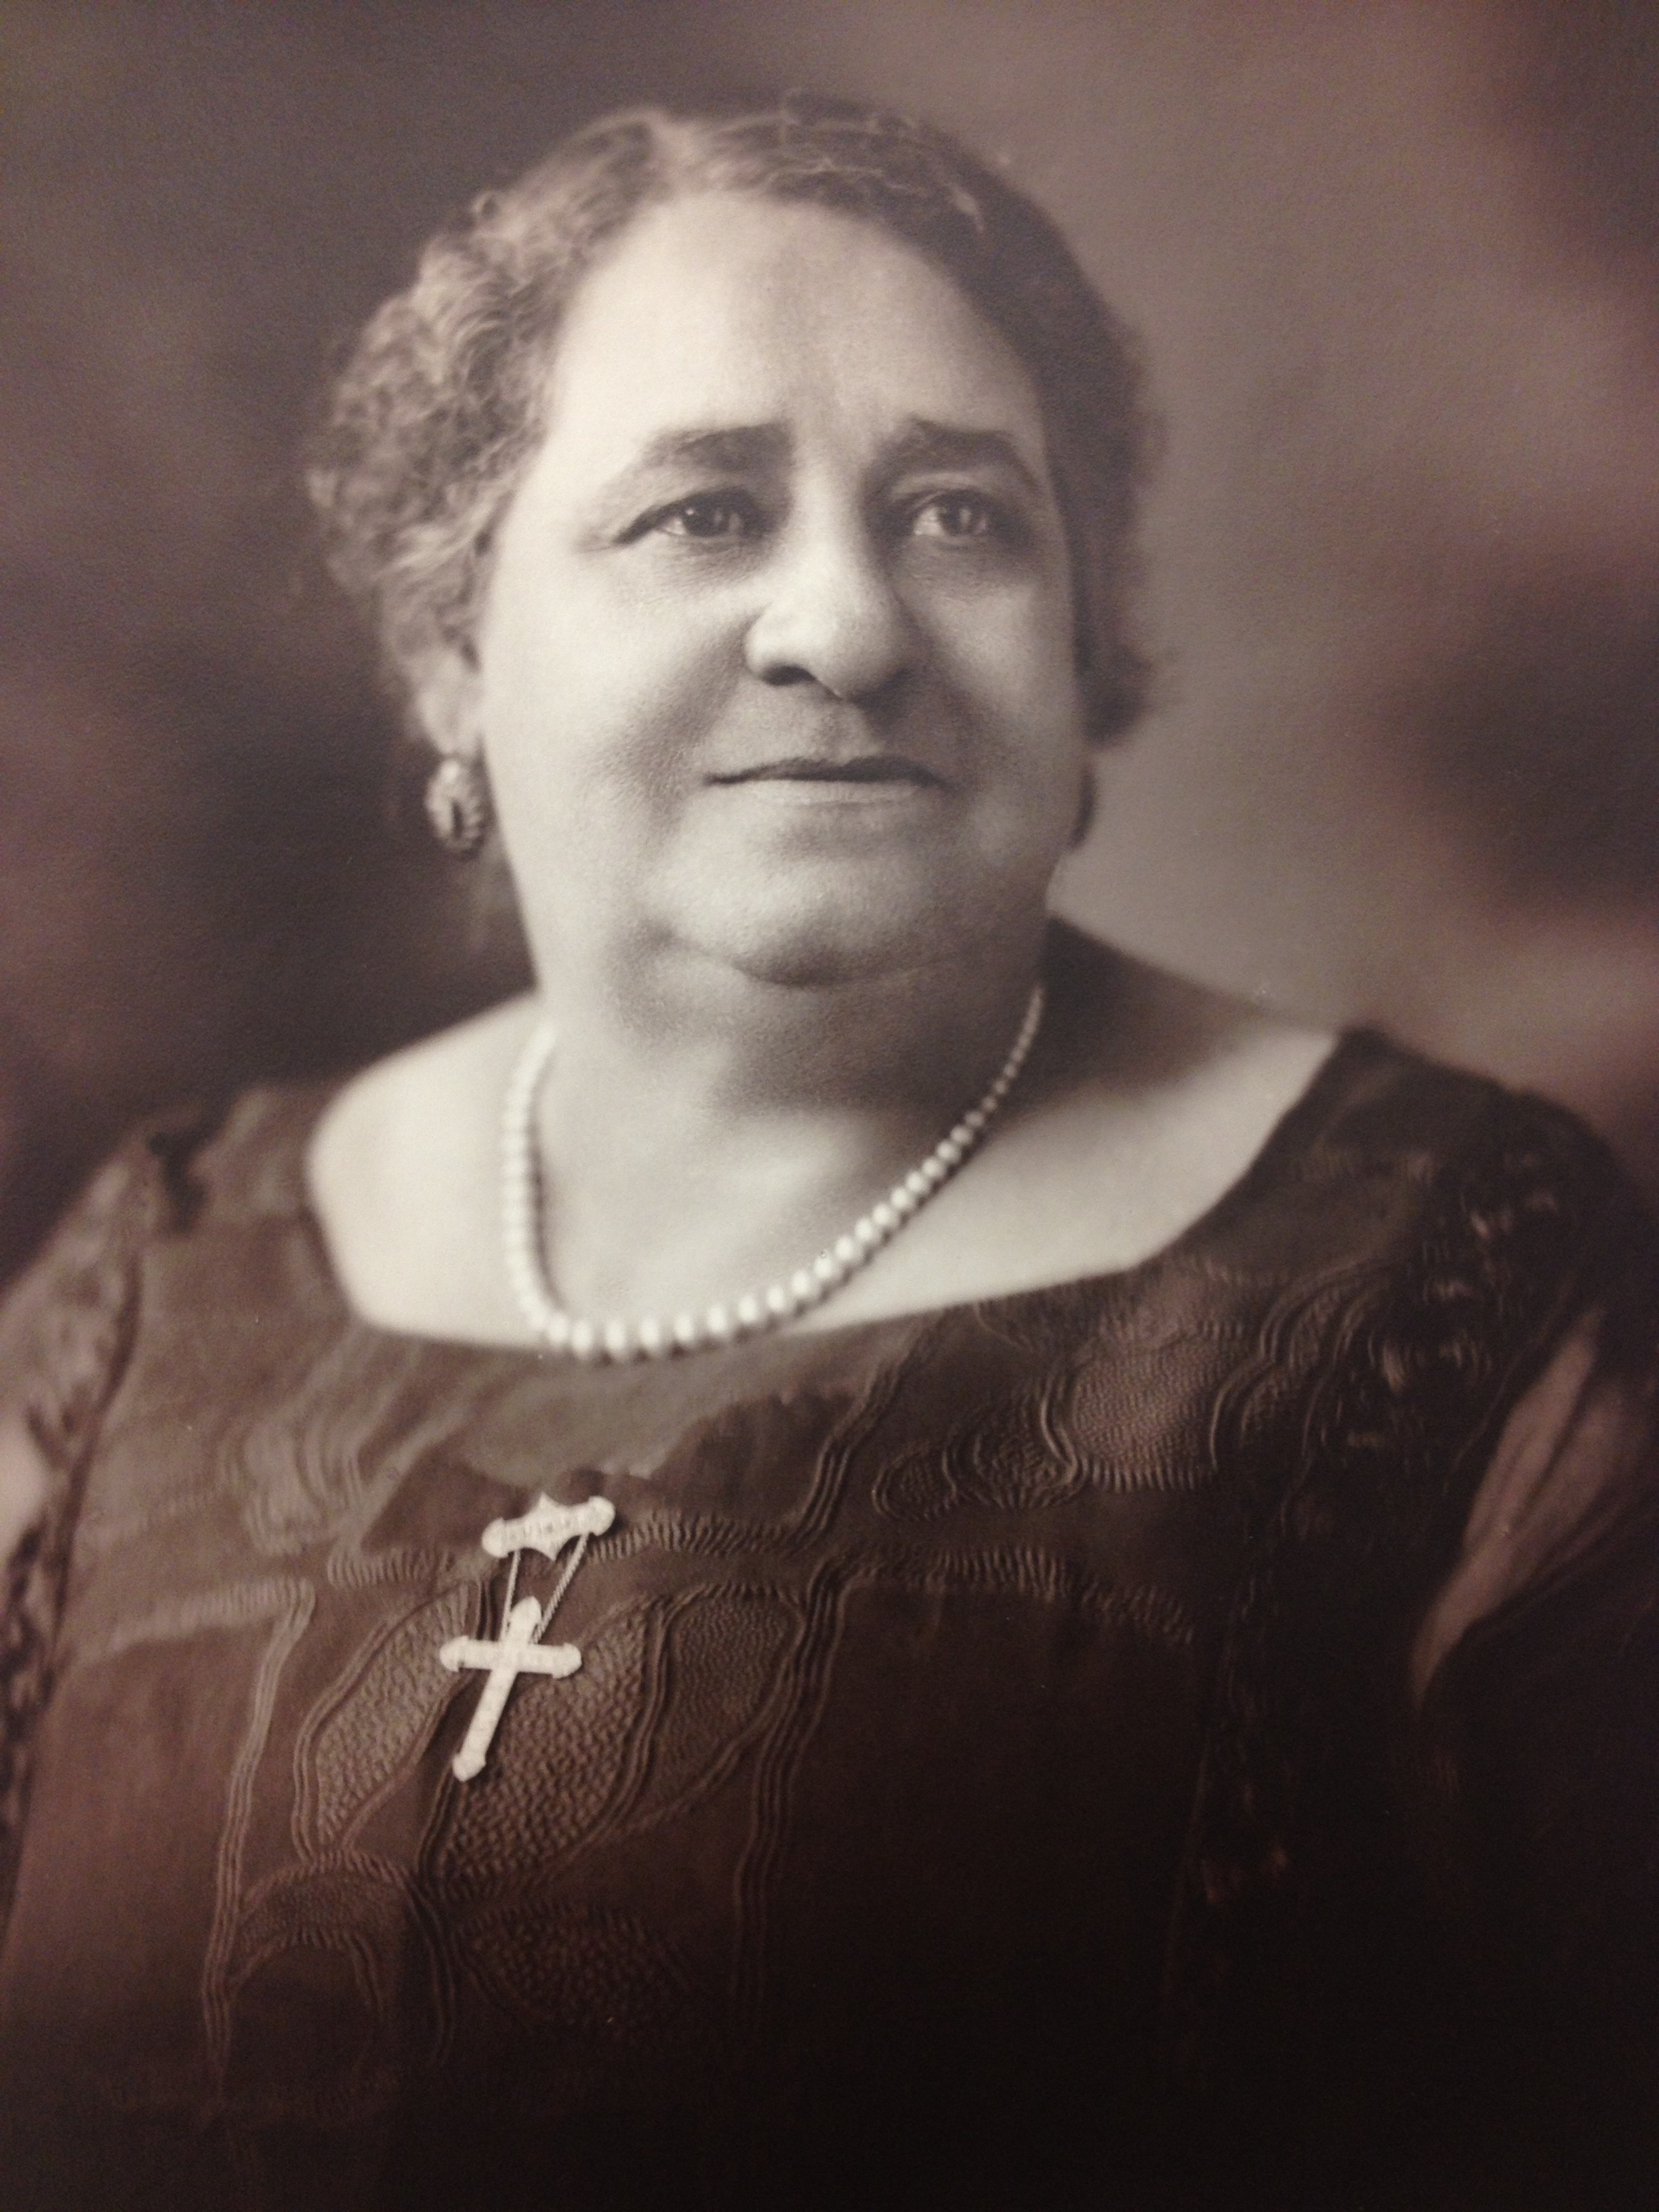 Maggie Lena Walker was an African American entrepreneur and civic leader who broke traditional gender and racial boundaries by becoming the first woman to establish and become president of a bank in the United States. She started her path to success when she was just a teenager realizing the value of encouraging individual self-help and integrity. The Saint Luke Penny Savings Bank in Richmond was the oldest continually African American–operated bank in the United States. In her role as grand secretary of the Independent Order of Saint Luke, Walker also was indispensable in organizing a variety of enterprises that advanced the African American community while expanding the public role of women by sitting on various boards of trustees to include the NAACP.